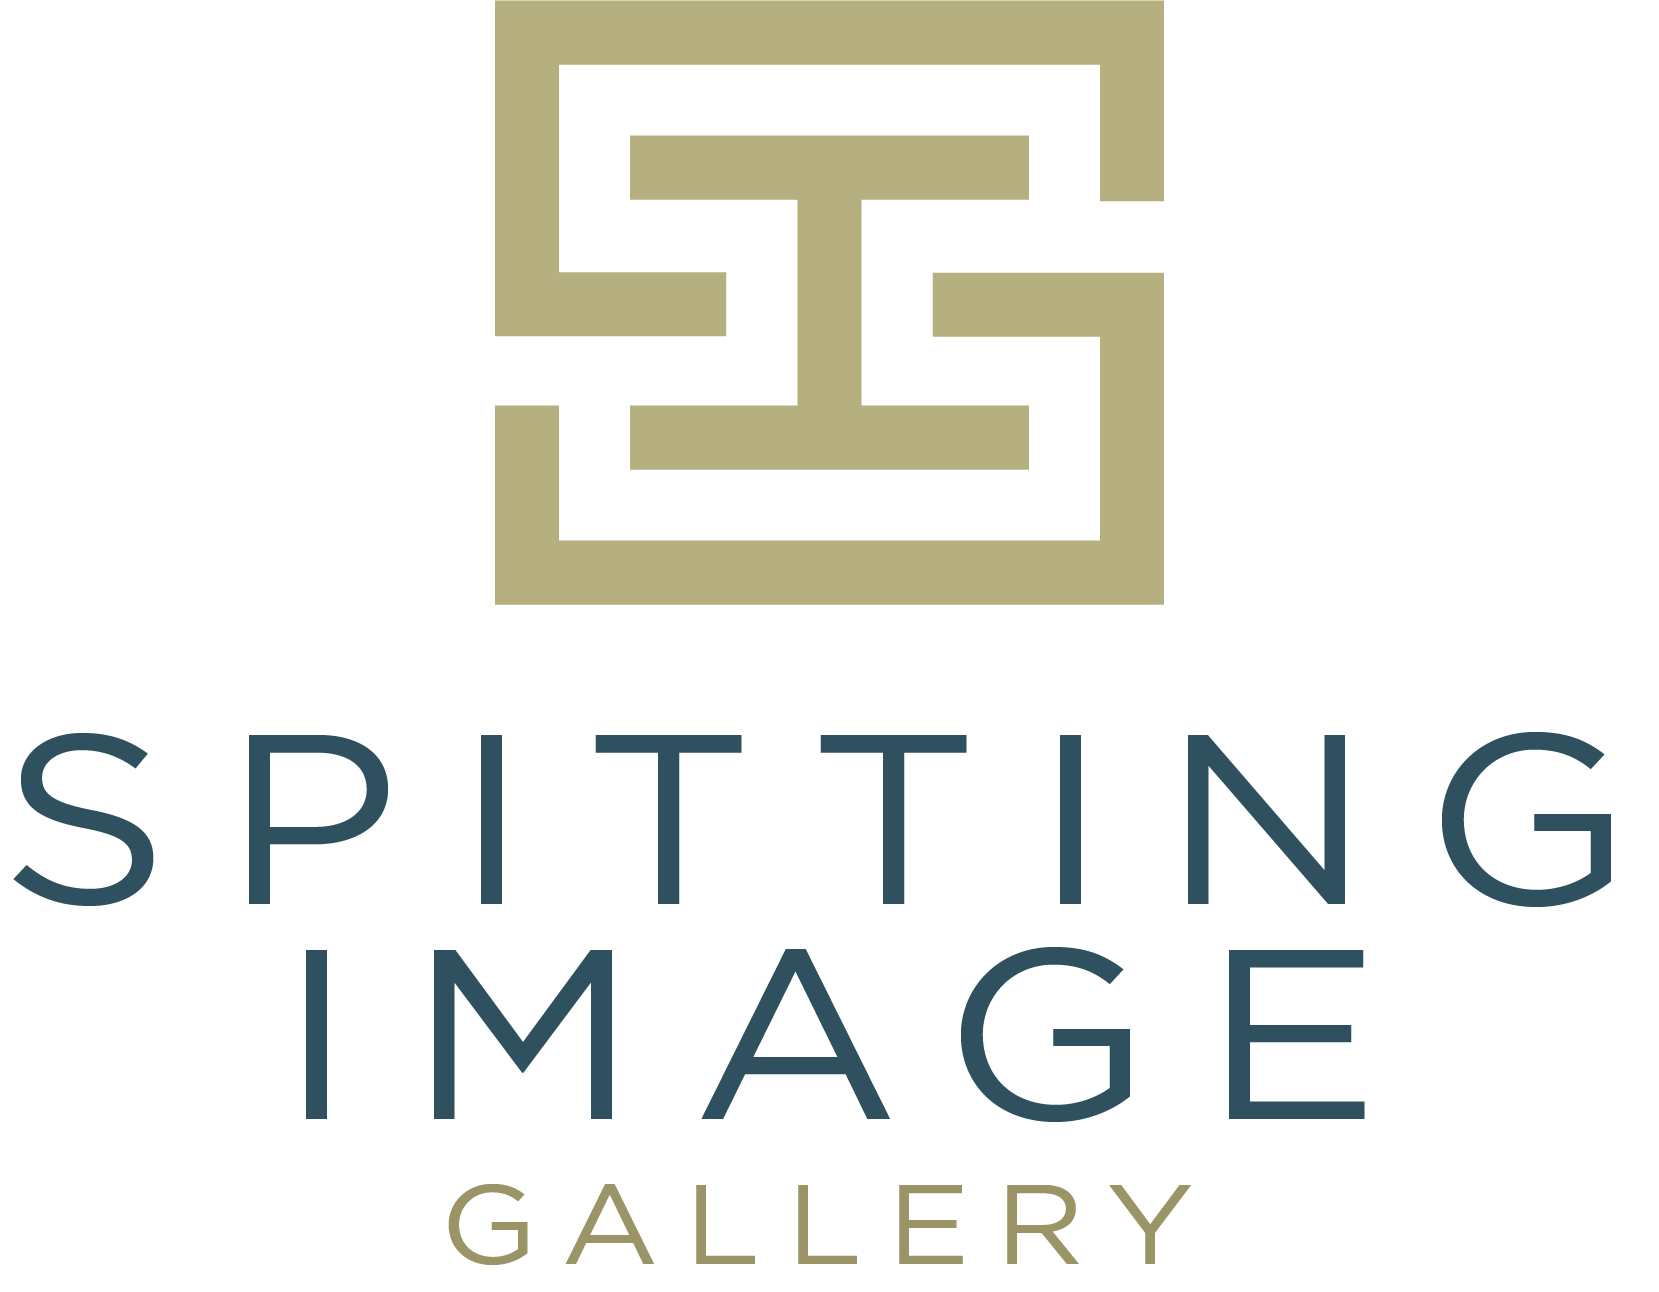 Spitting Image Gallery